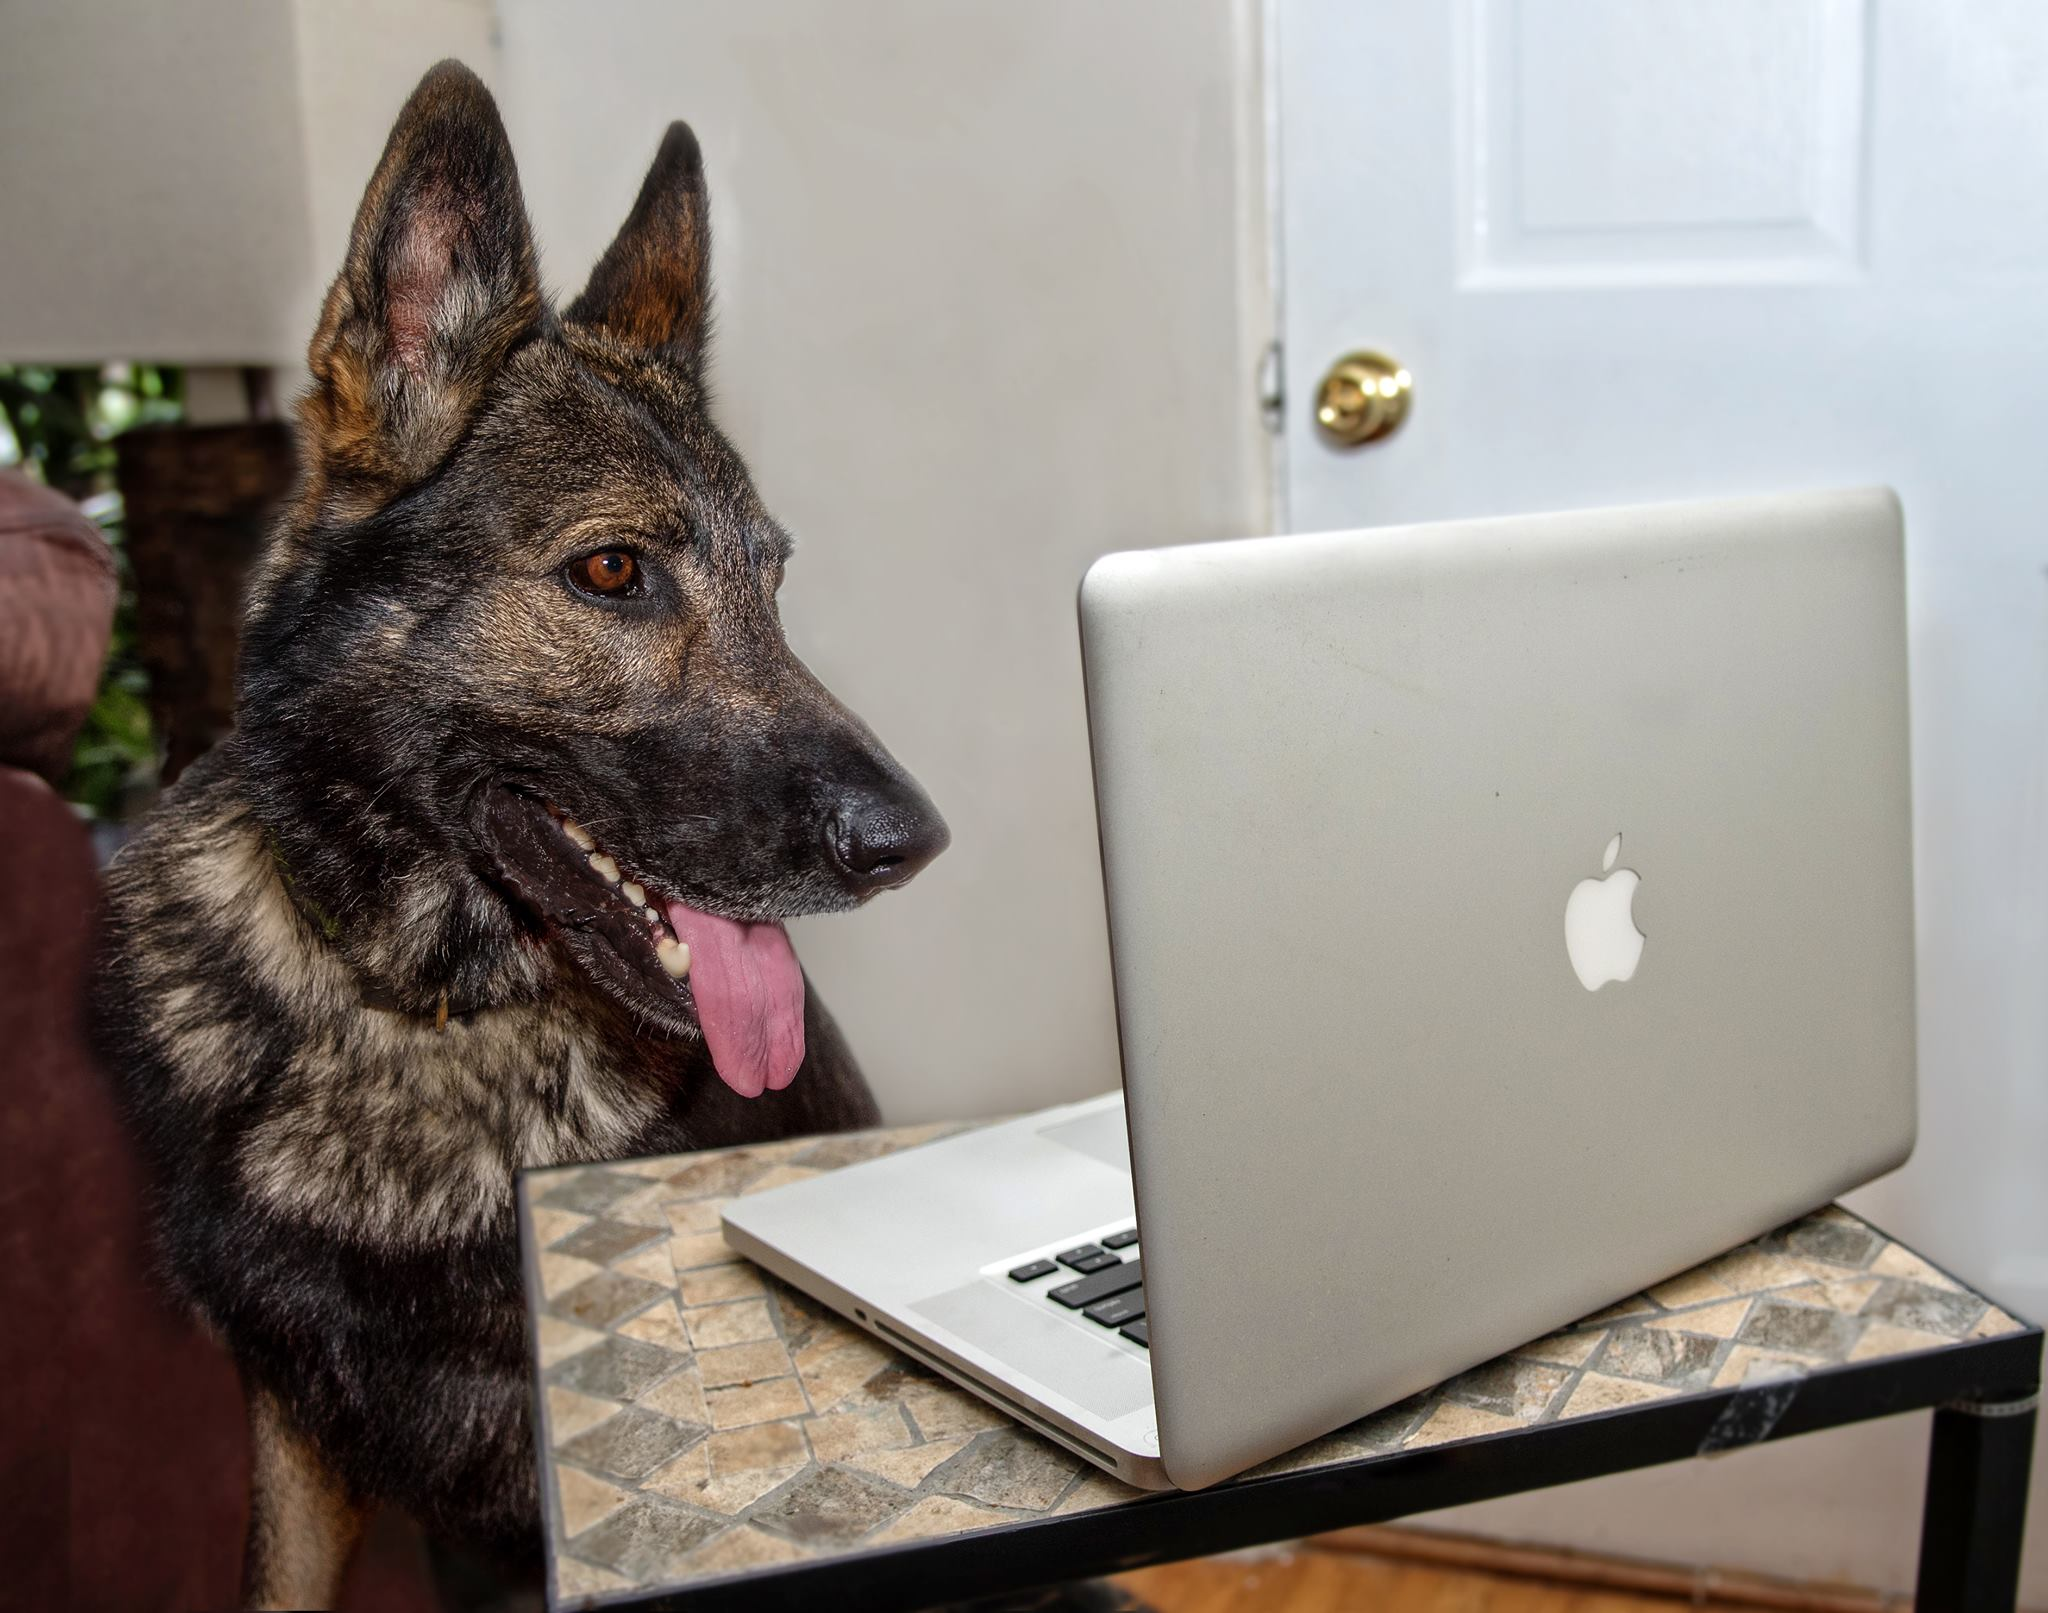 Going Digital: 3 Things You Need to Take Your Dog Training Business to the Next Level